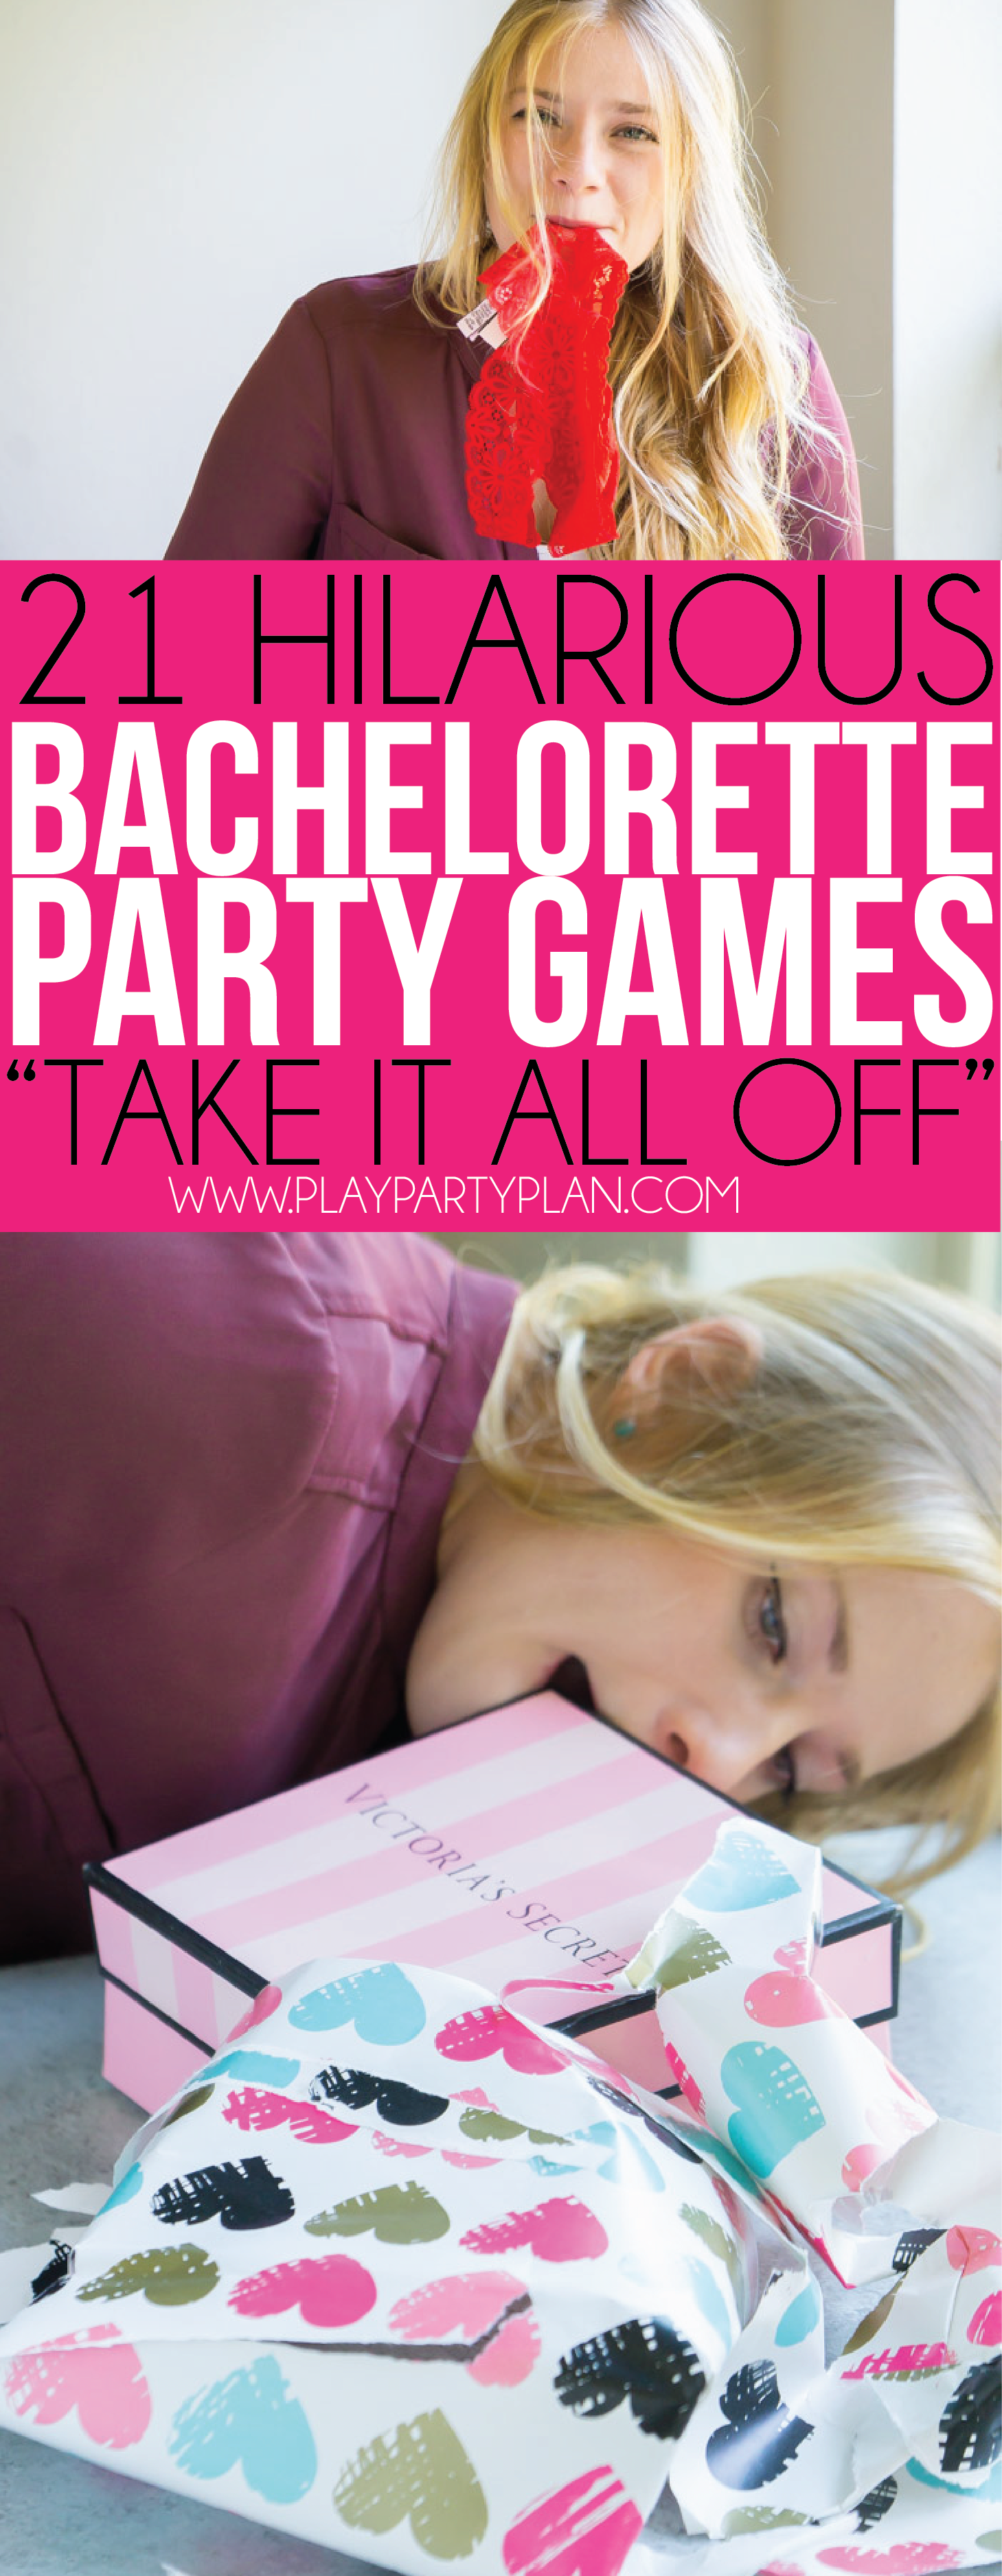 Take in all off in these fun bachelorette party games